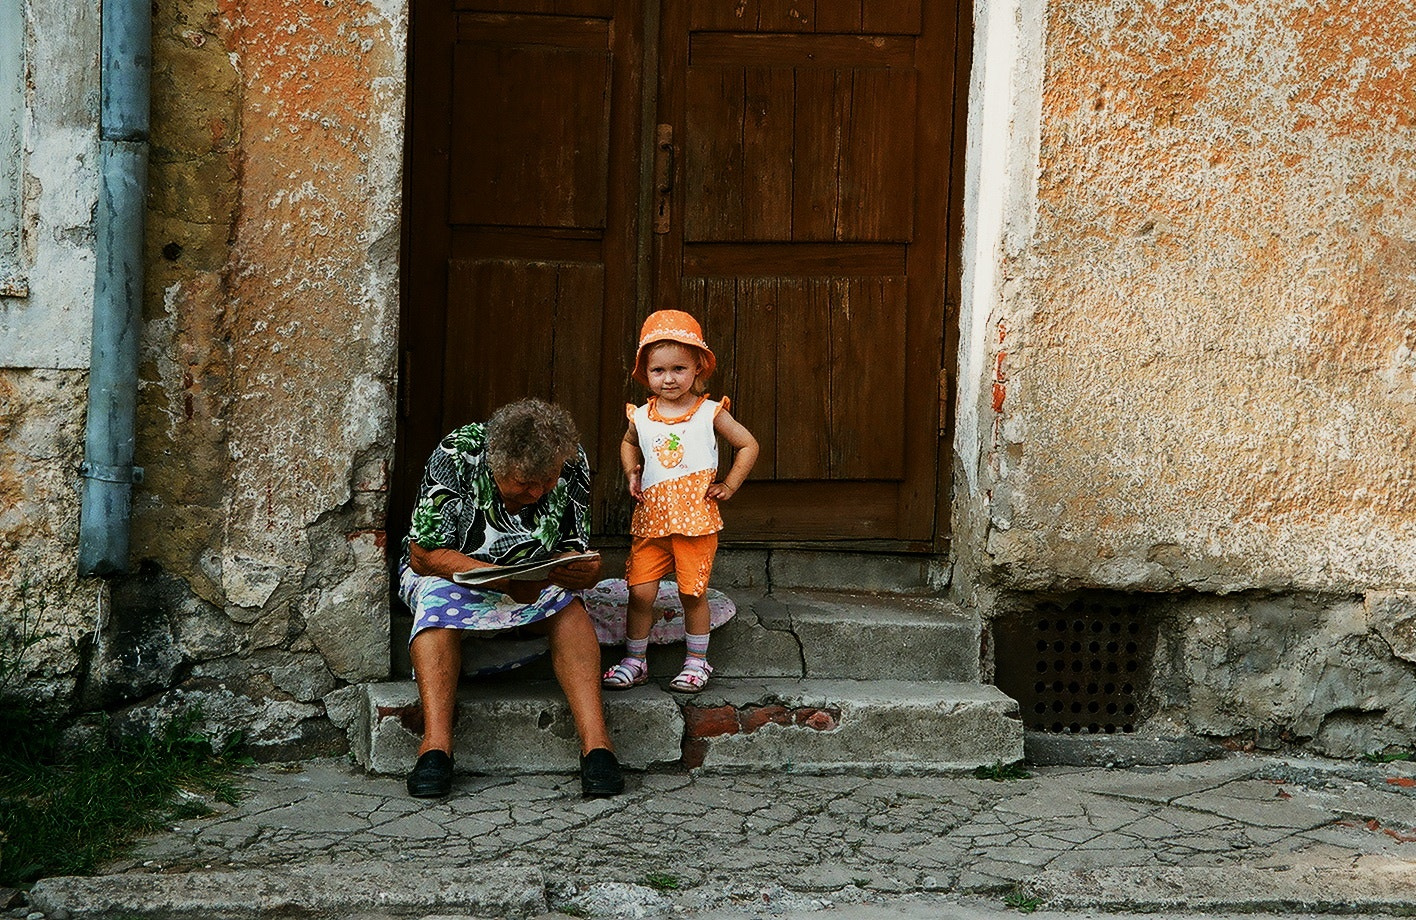 Photograph Grand:Mother\Daughter by Andrey Cherkasov on 500px